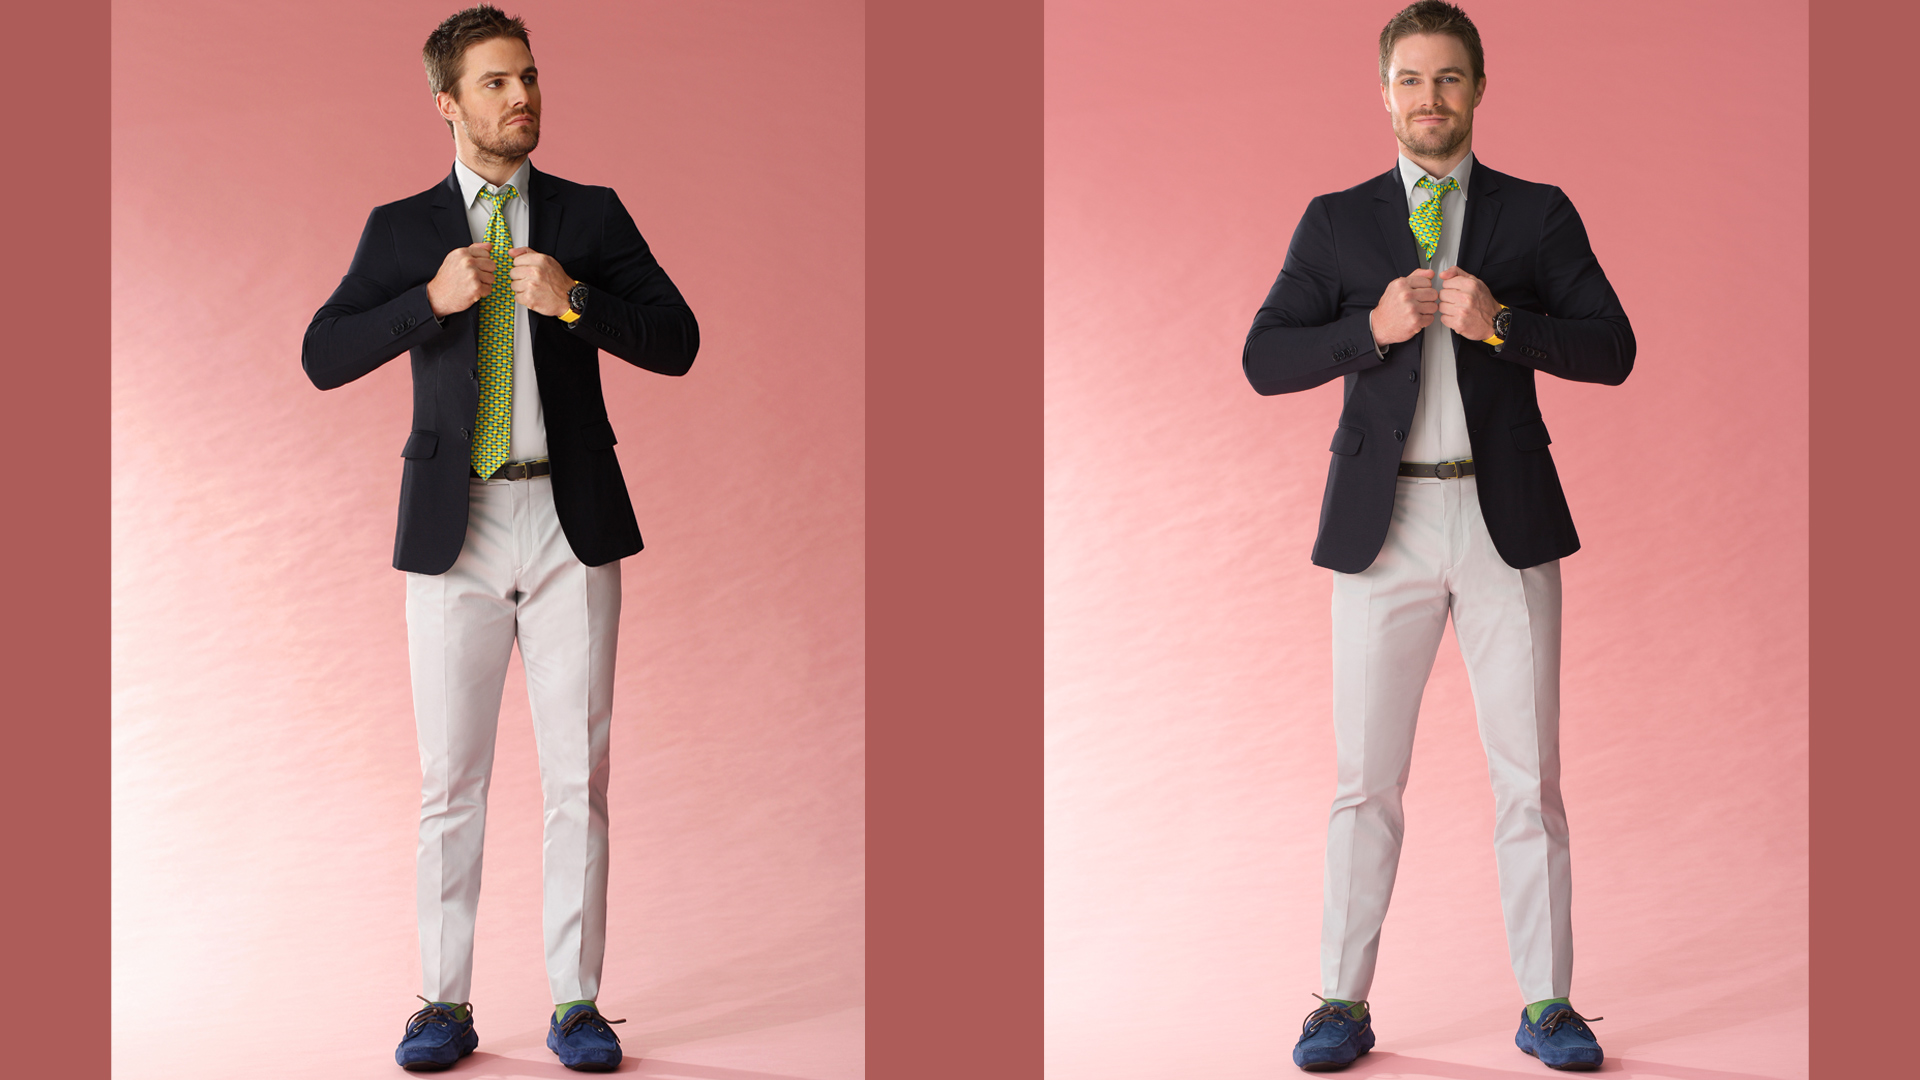 Clearly playing fashion model also suits Stephen Amell to perfection